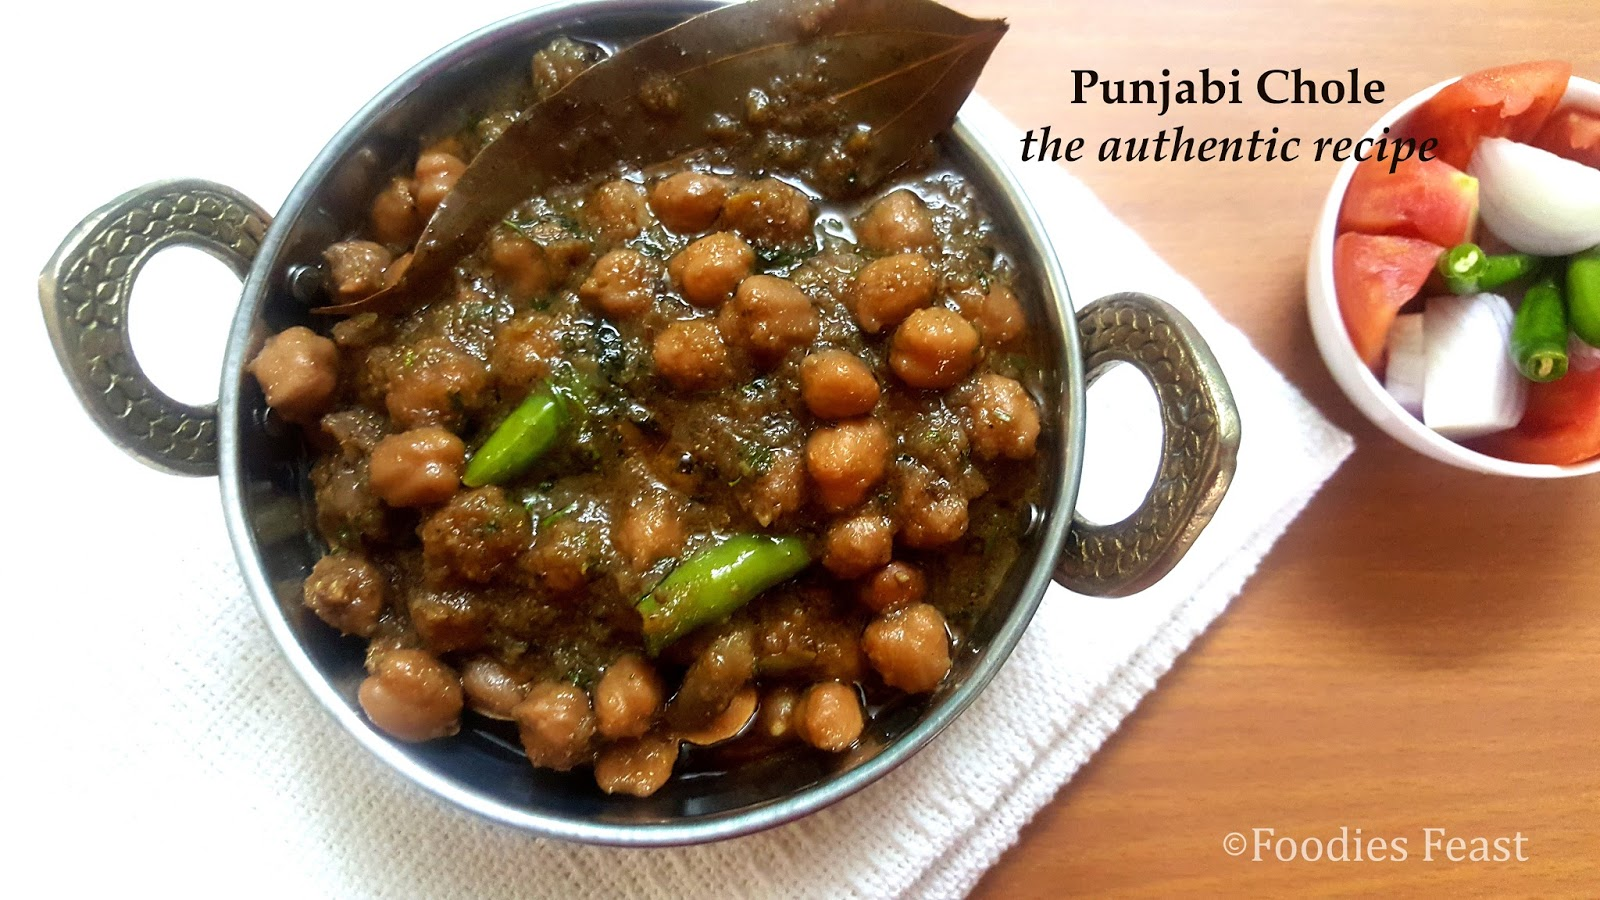 How to make the authentic punjabi chole punjabi chole recipe punjabi chole recipe forumfinder Image collections